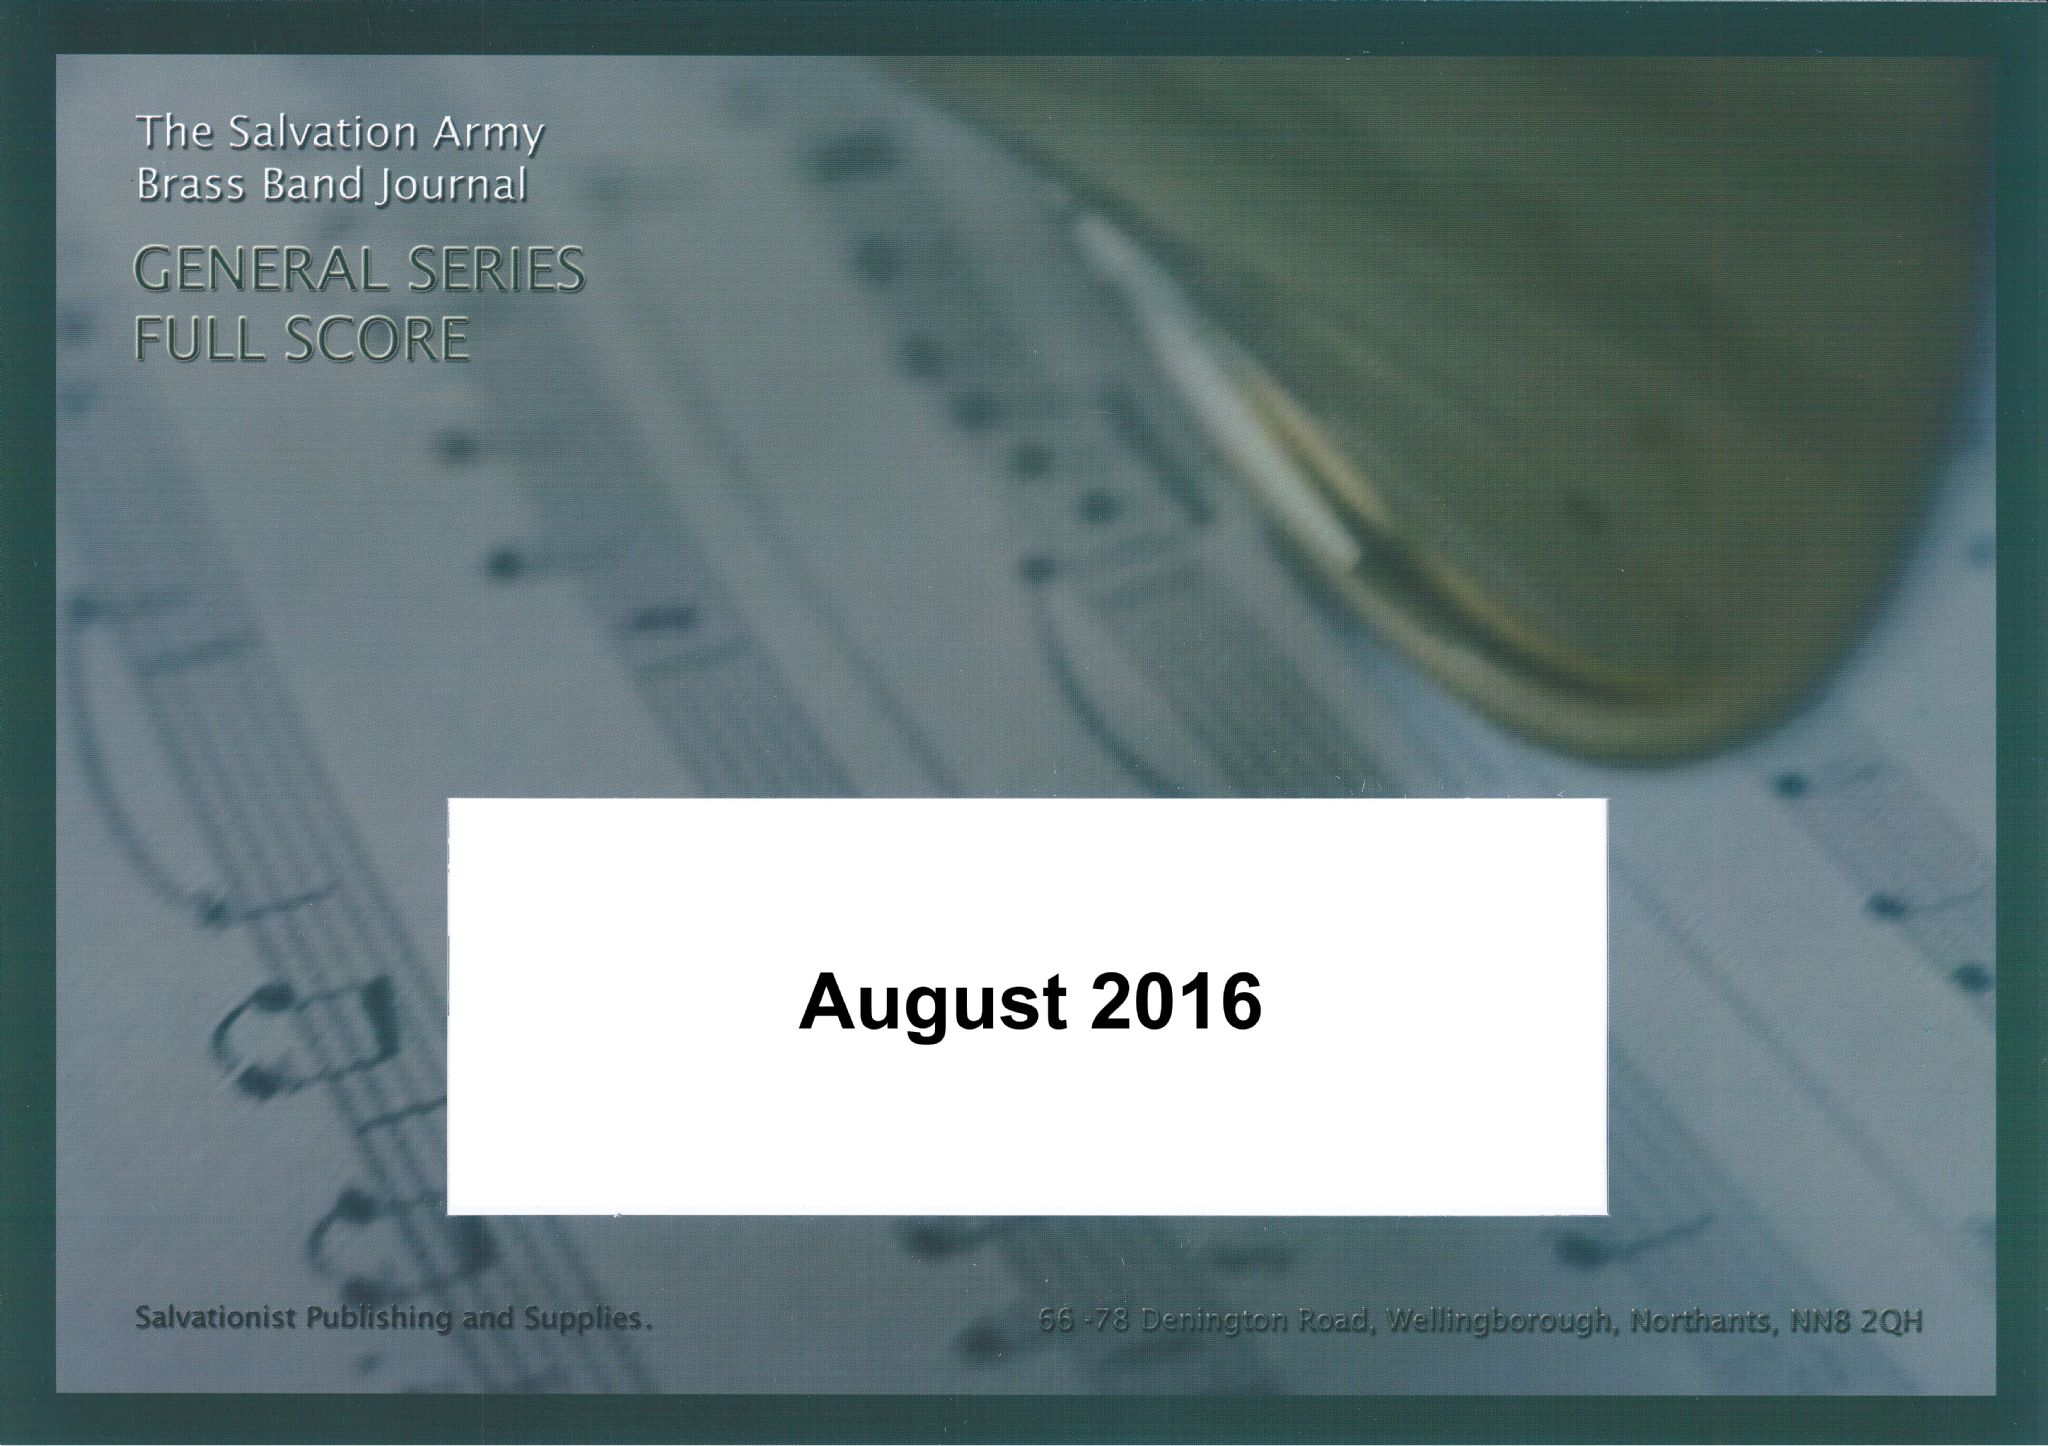 General Series Band Journal August 2016 Numbers 2158 - 2161